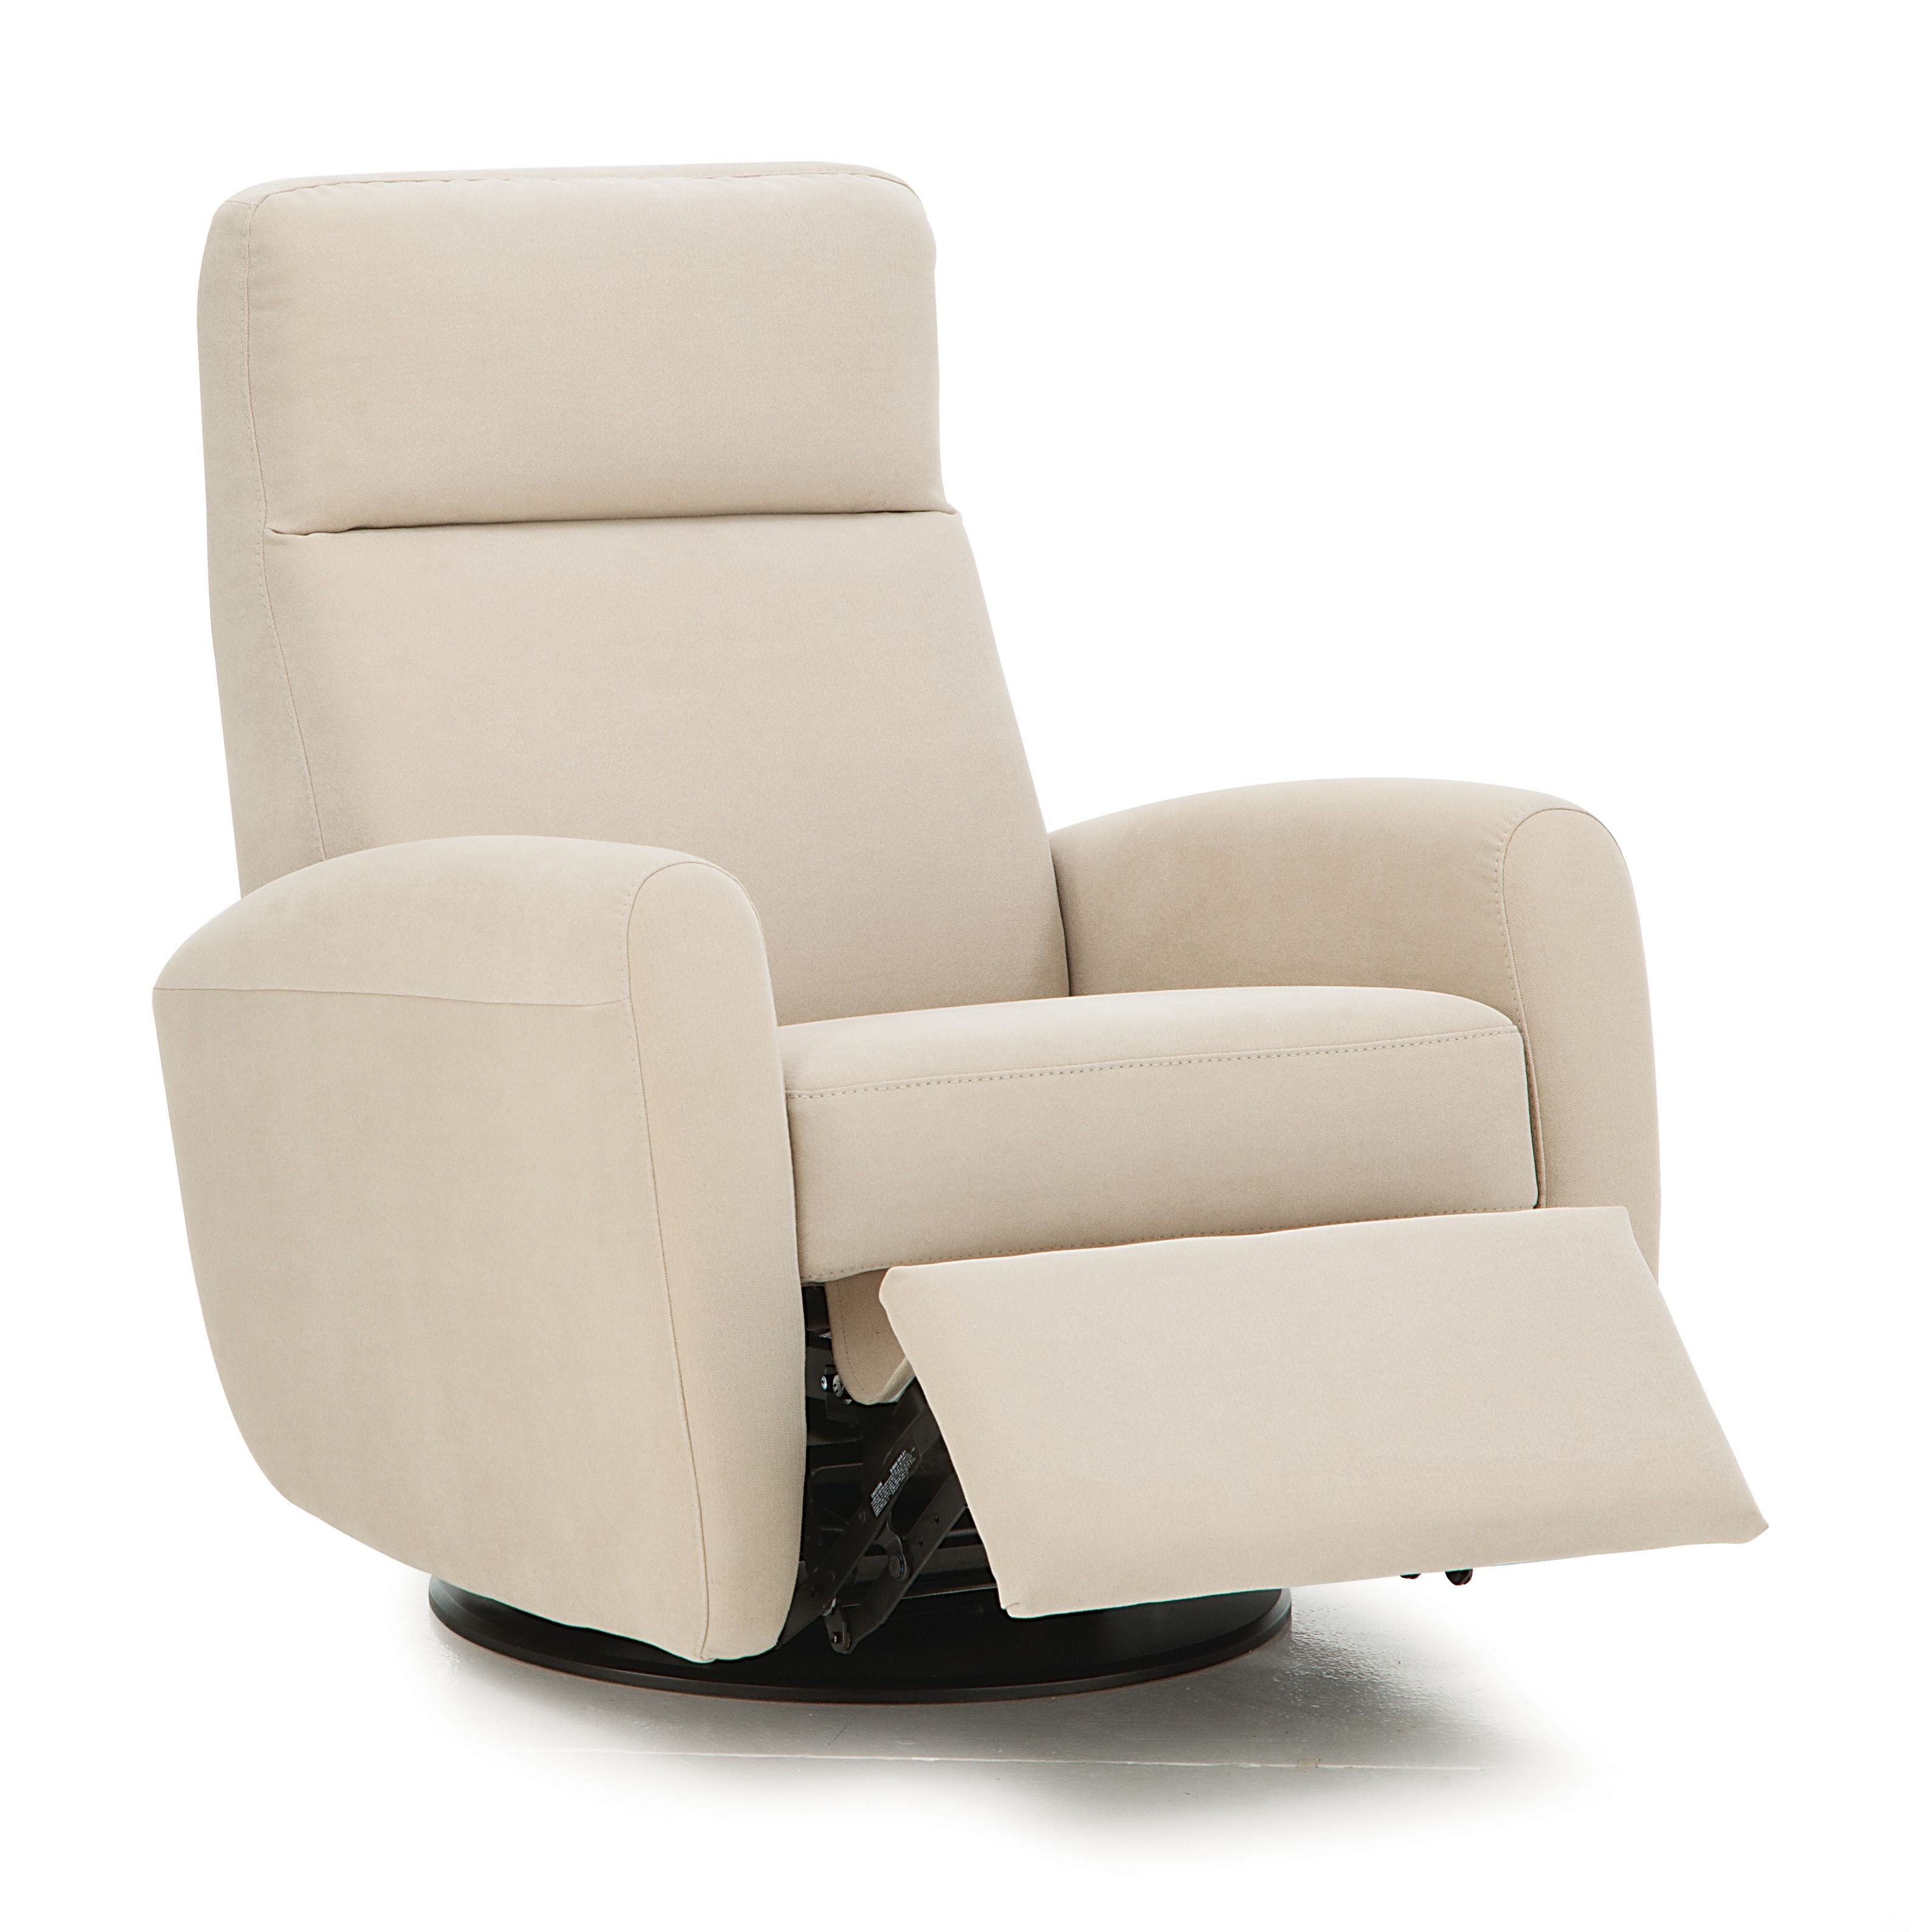 Buena Vista 42207 47207 Recliner 450 Fabrics And Leathers